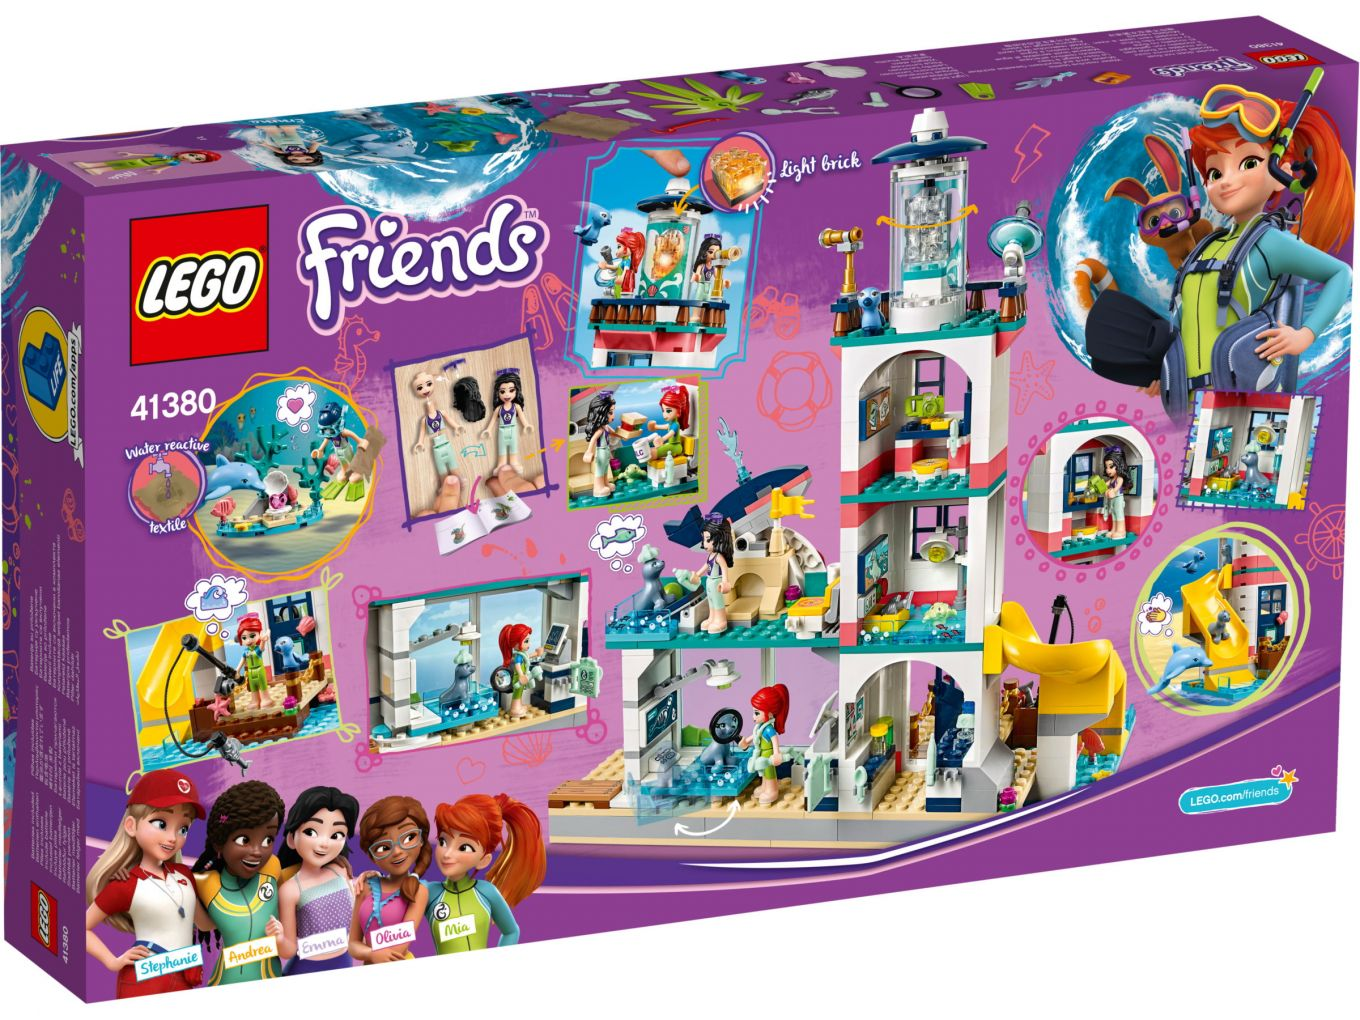 lego-friends-rescue-lighthouse-41380-leuchtturm-box-back-2019 zusammengebaut.com